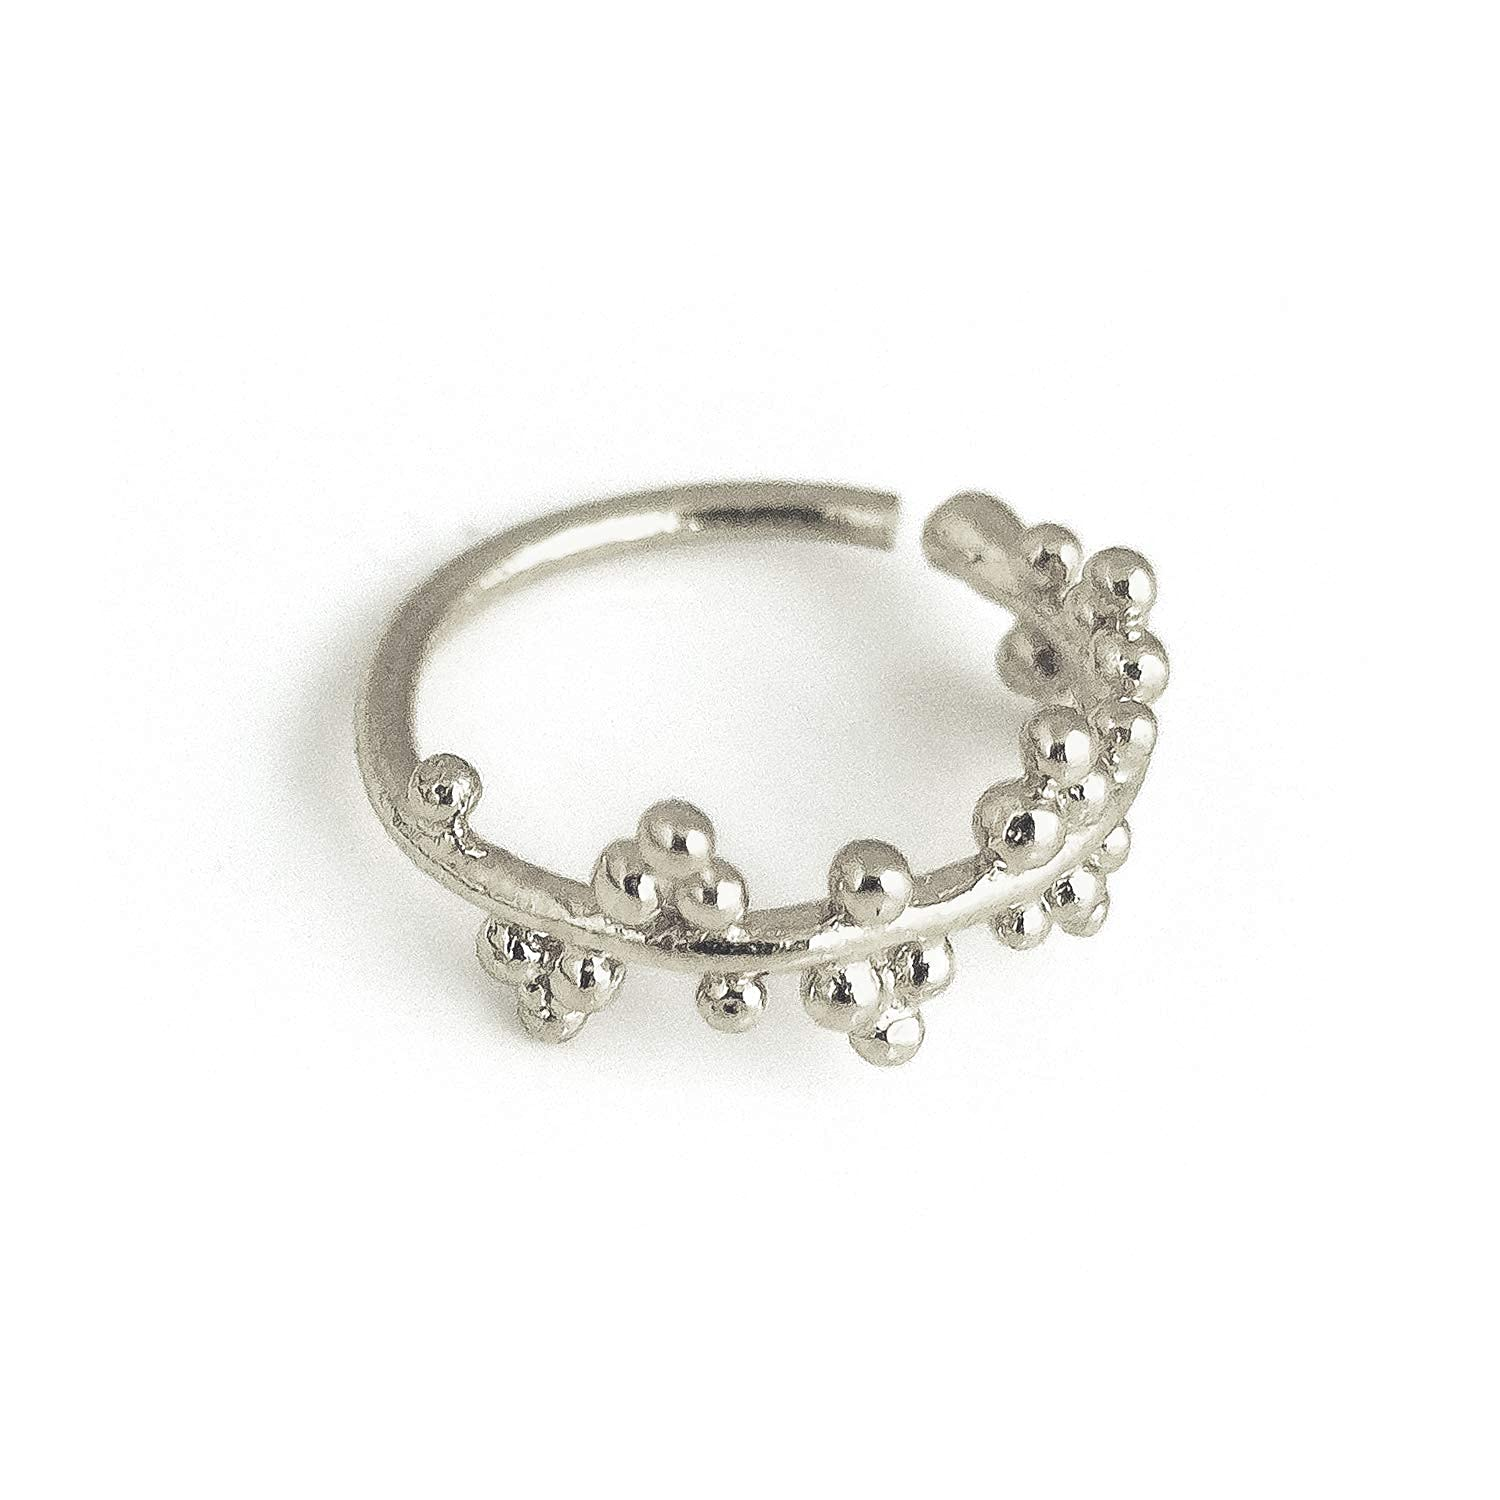 Unique Nose Ring Sterling Silver Albuquerque Mall Piercing Tri Indian Hoop New popularity